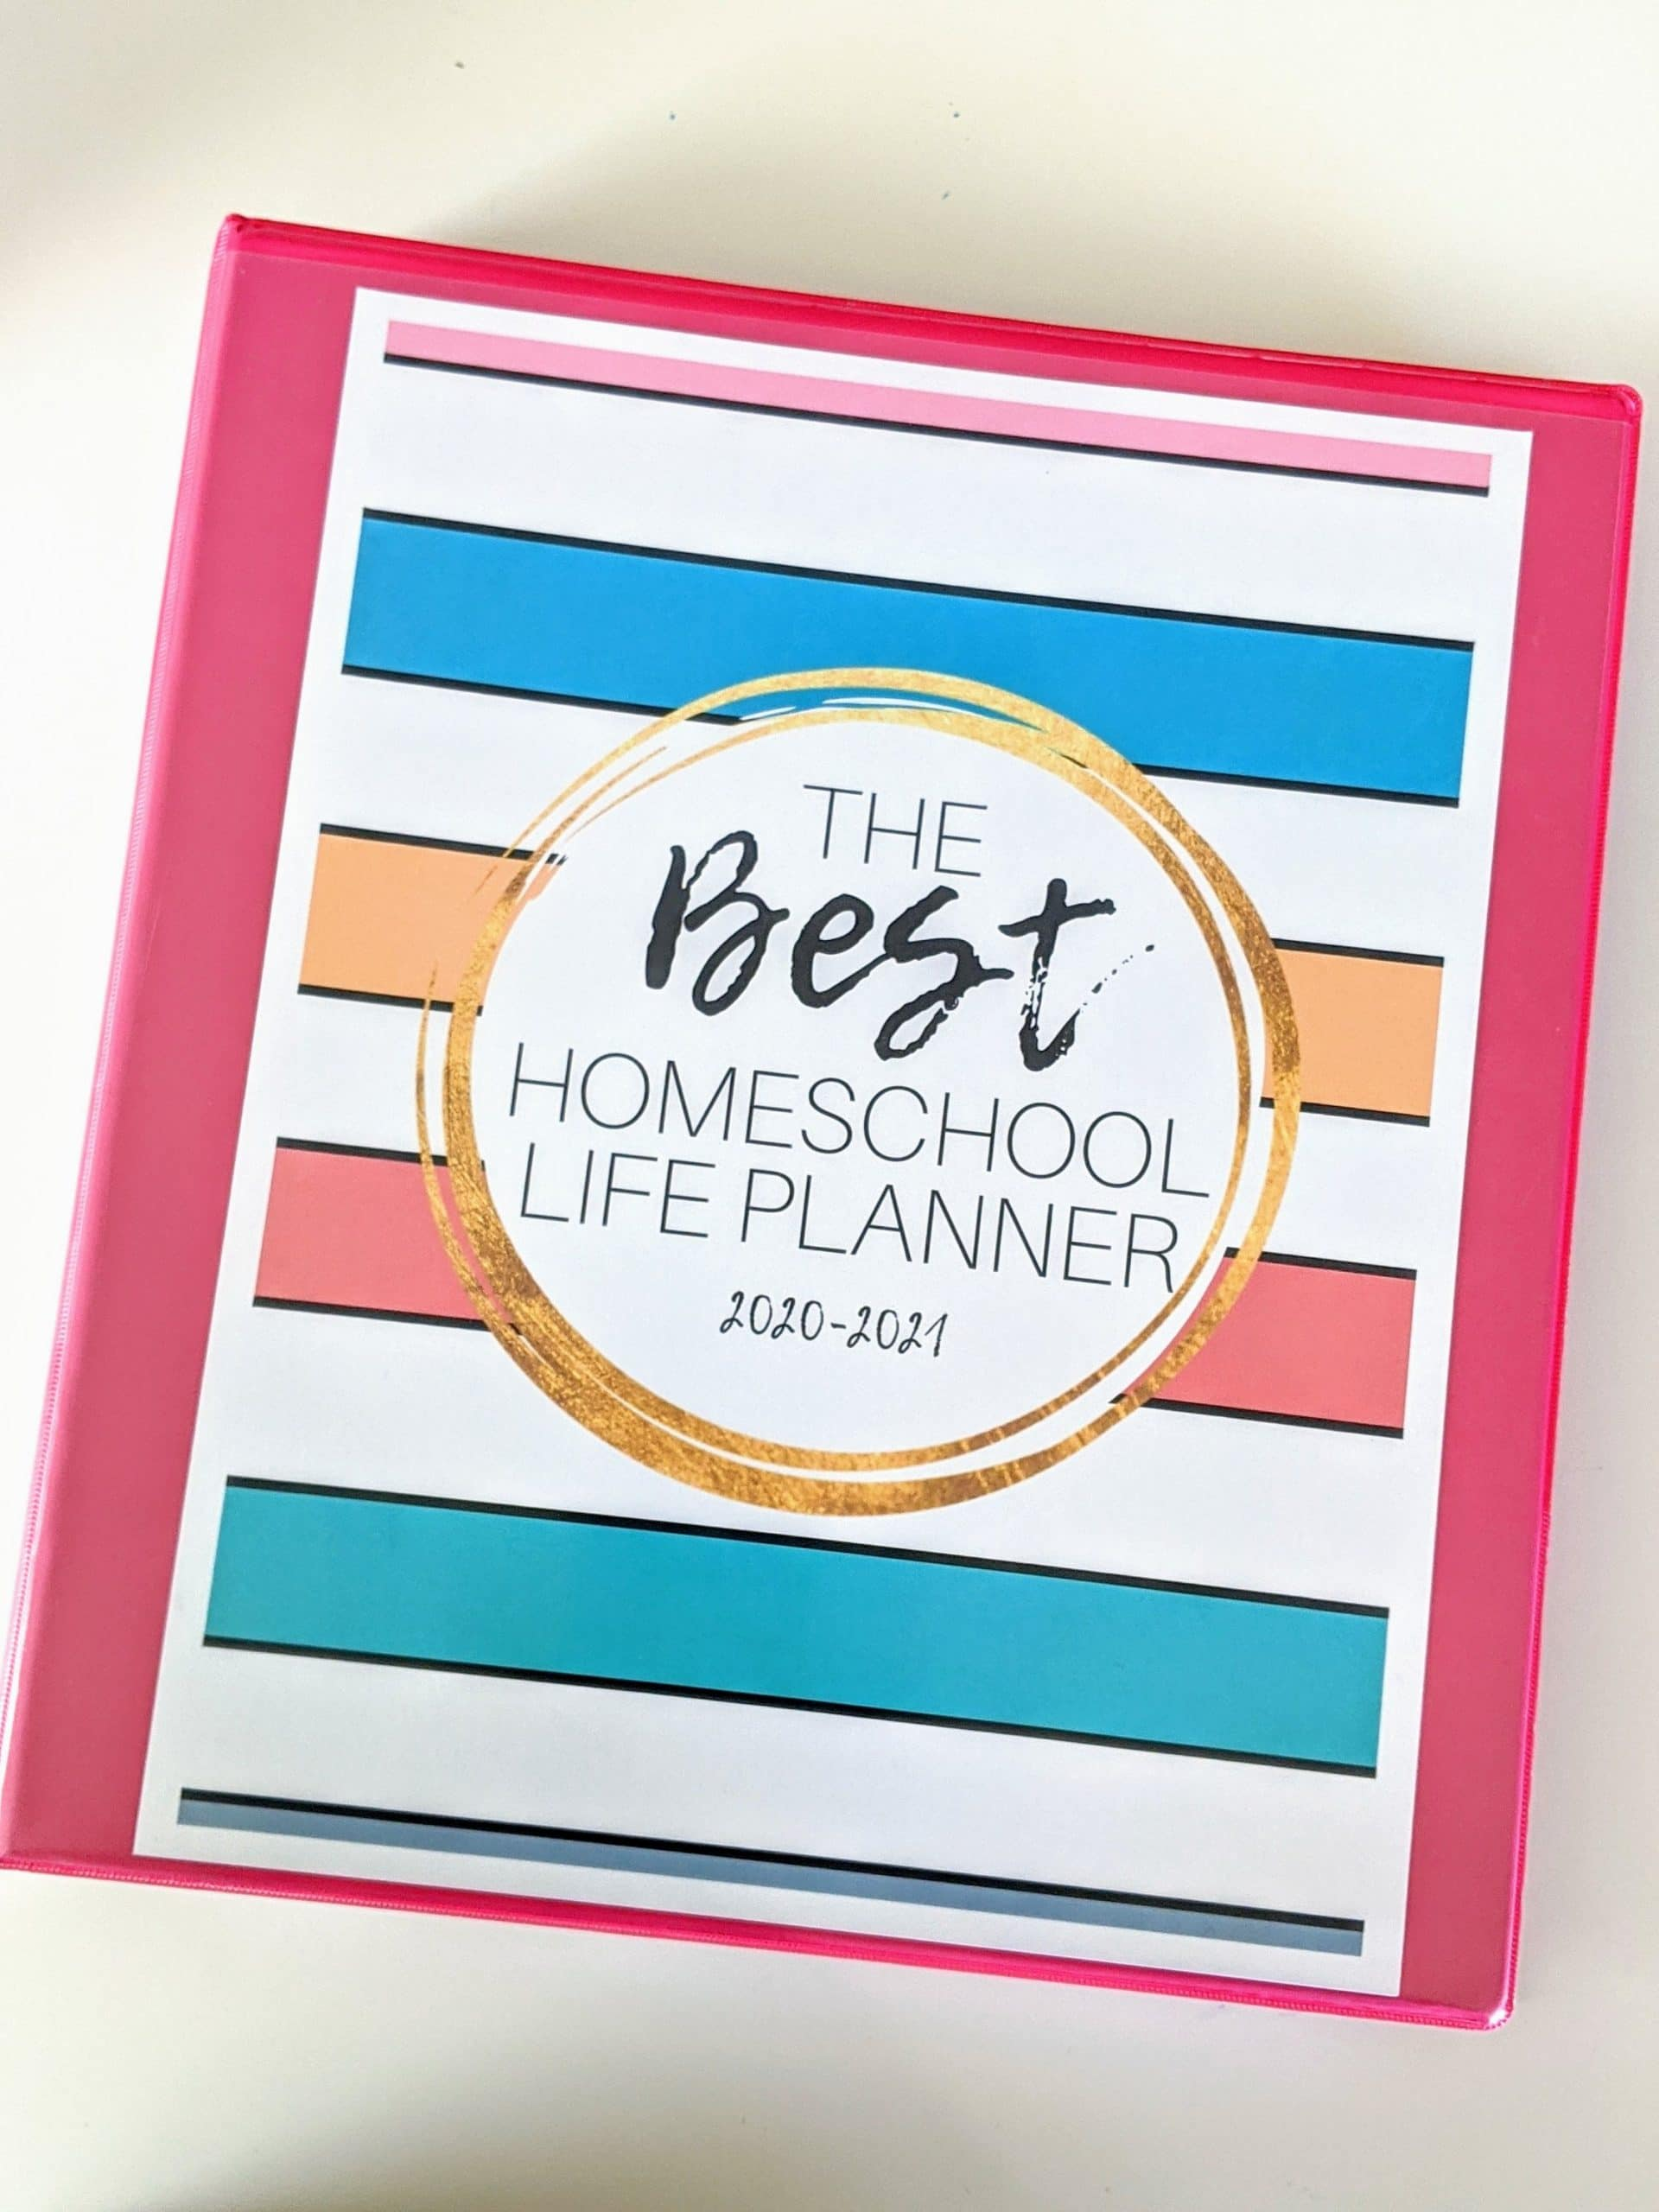 The Best Homeschool Life Planner. This planner is where bullet journals and traditional homeschool planners unite. Customize it to be your perfect homeschool life planner! #homeschoolplanner #planner